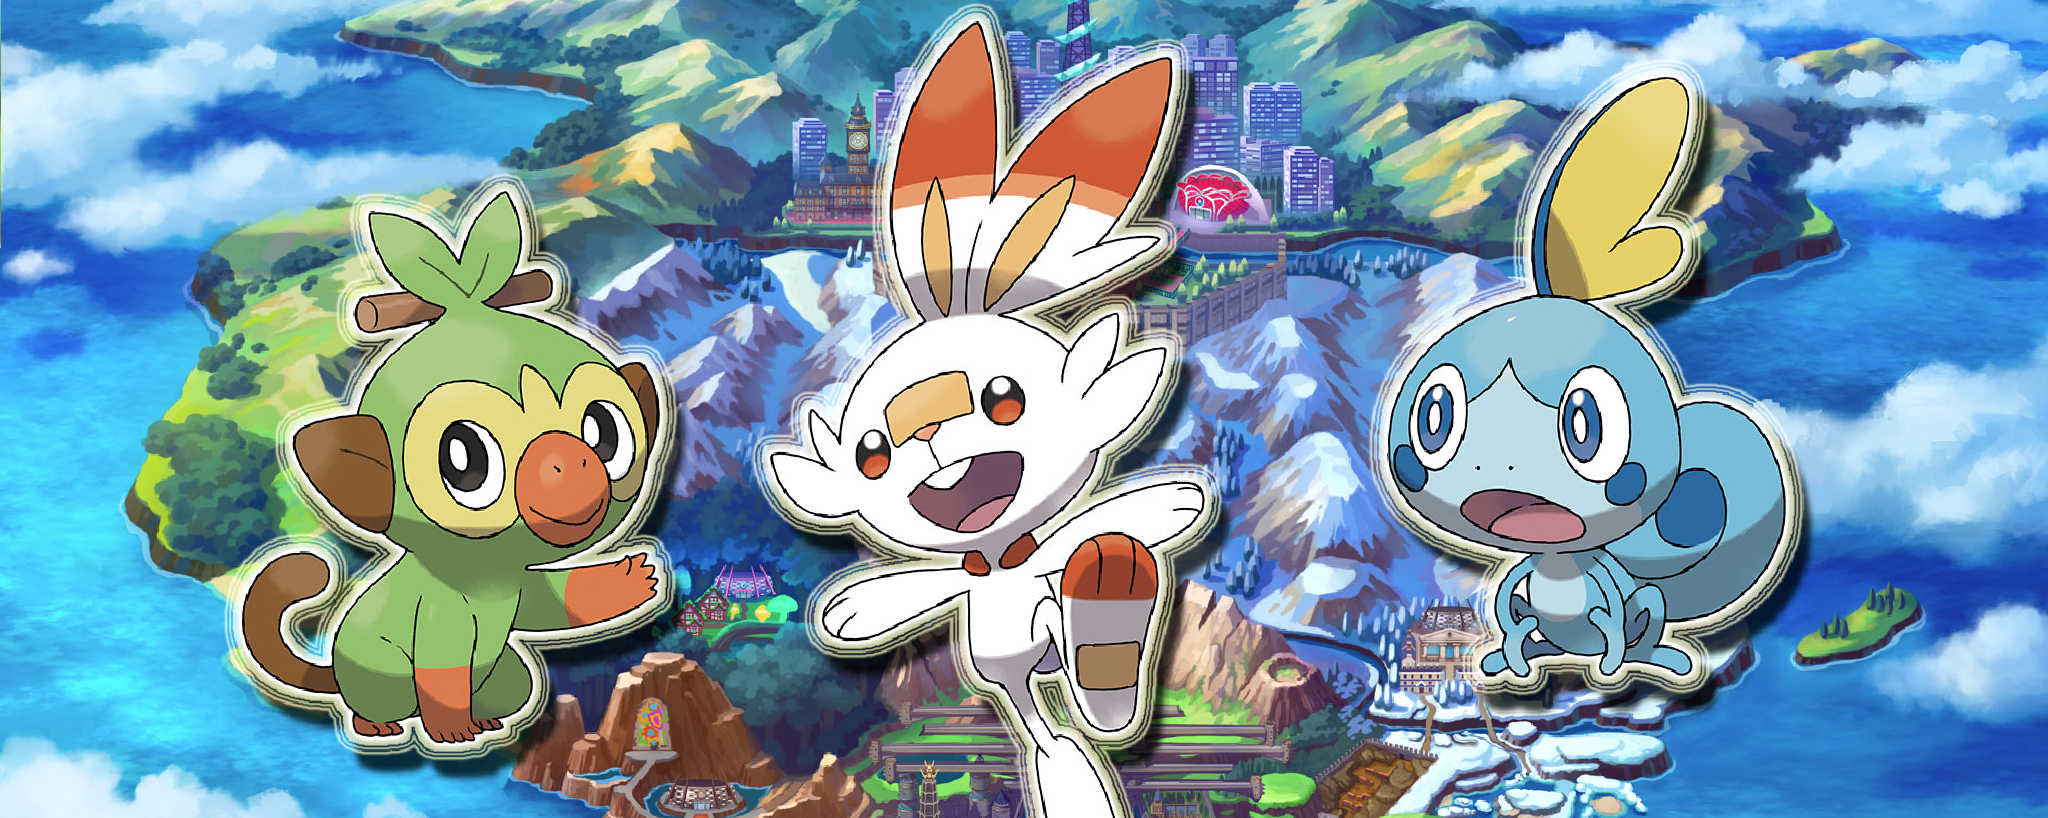 Grookey, Scorbunny and Sobble Pokemon Sword & Shield starters